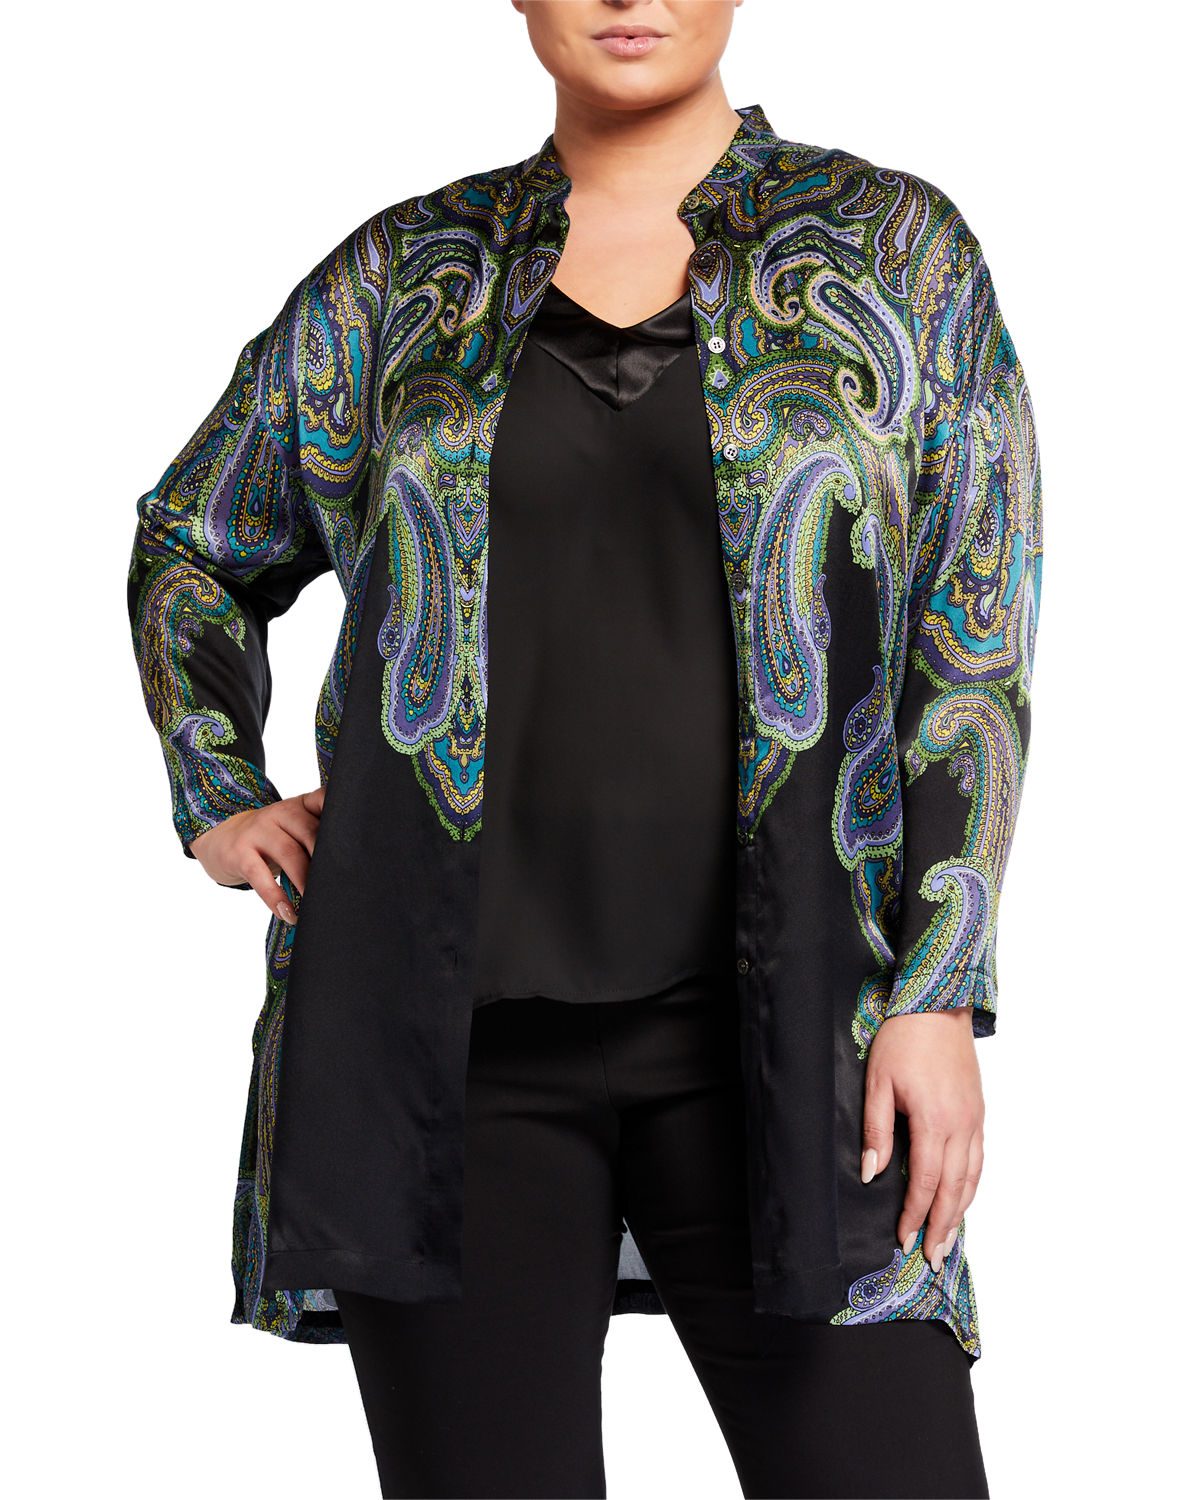 Go Silk PLUS SIZE ALLOVER PRINT SILK JACKET